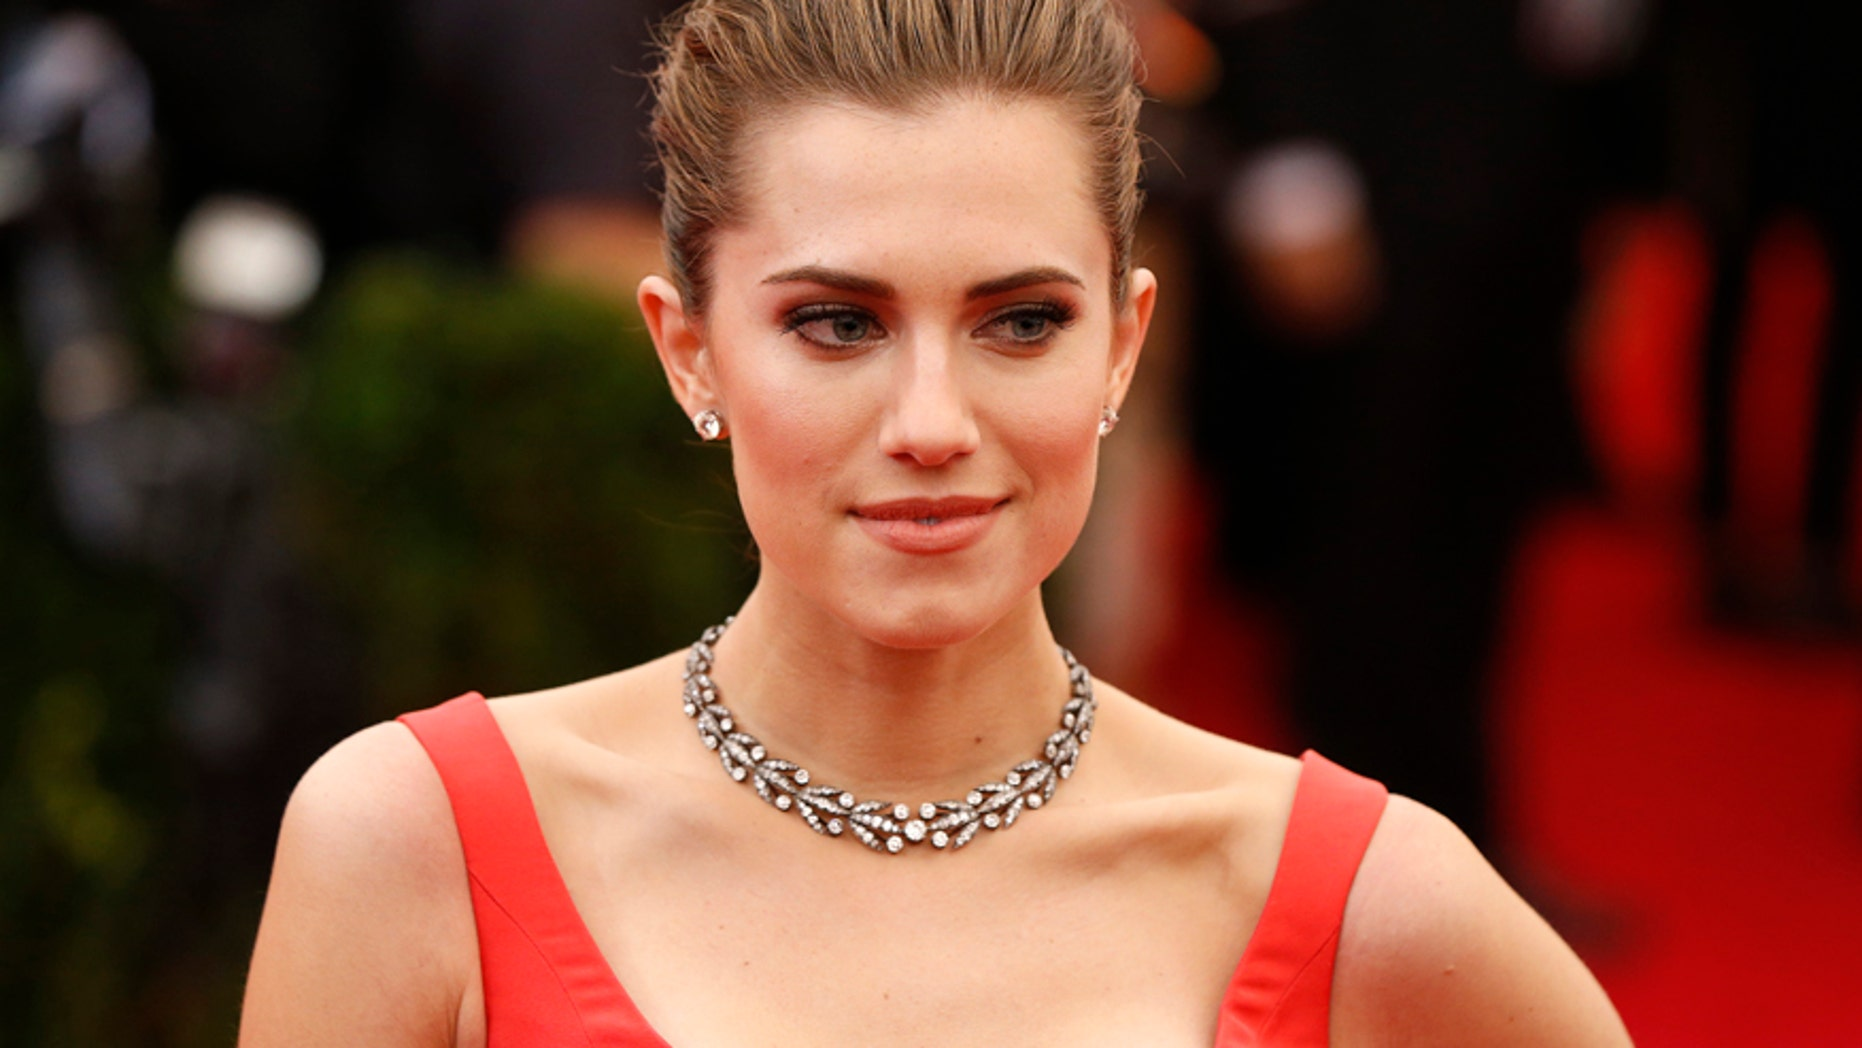 """Actress Allison Williams arrives at the Metropolitan Museum of Art Costume Institute Gala Benefit celebrating the opening of """"Charles James: Beyond Fashion"""" in Upper Manhattan, New York, May 5, 2014."""